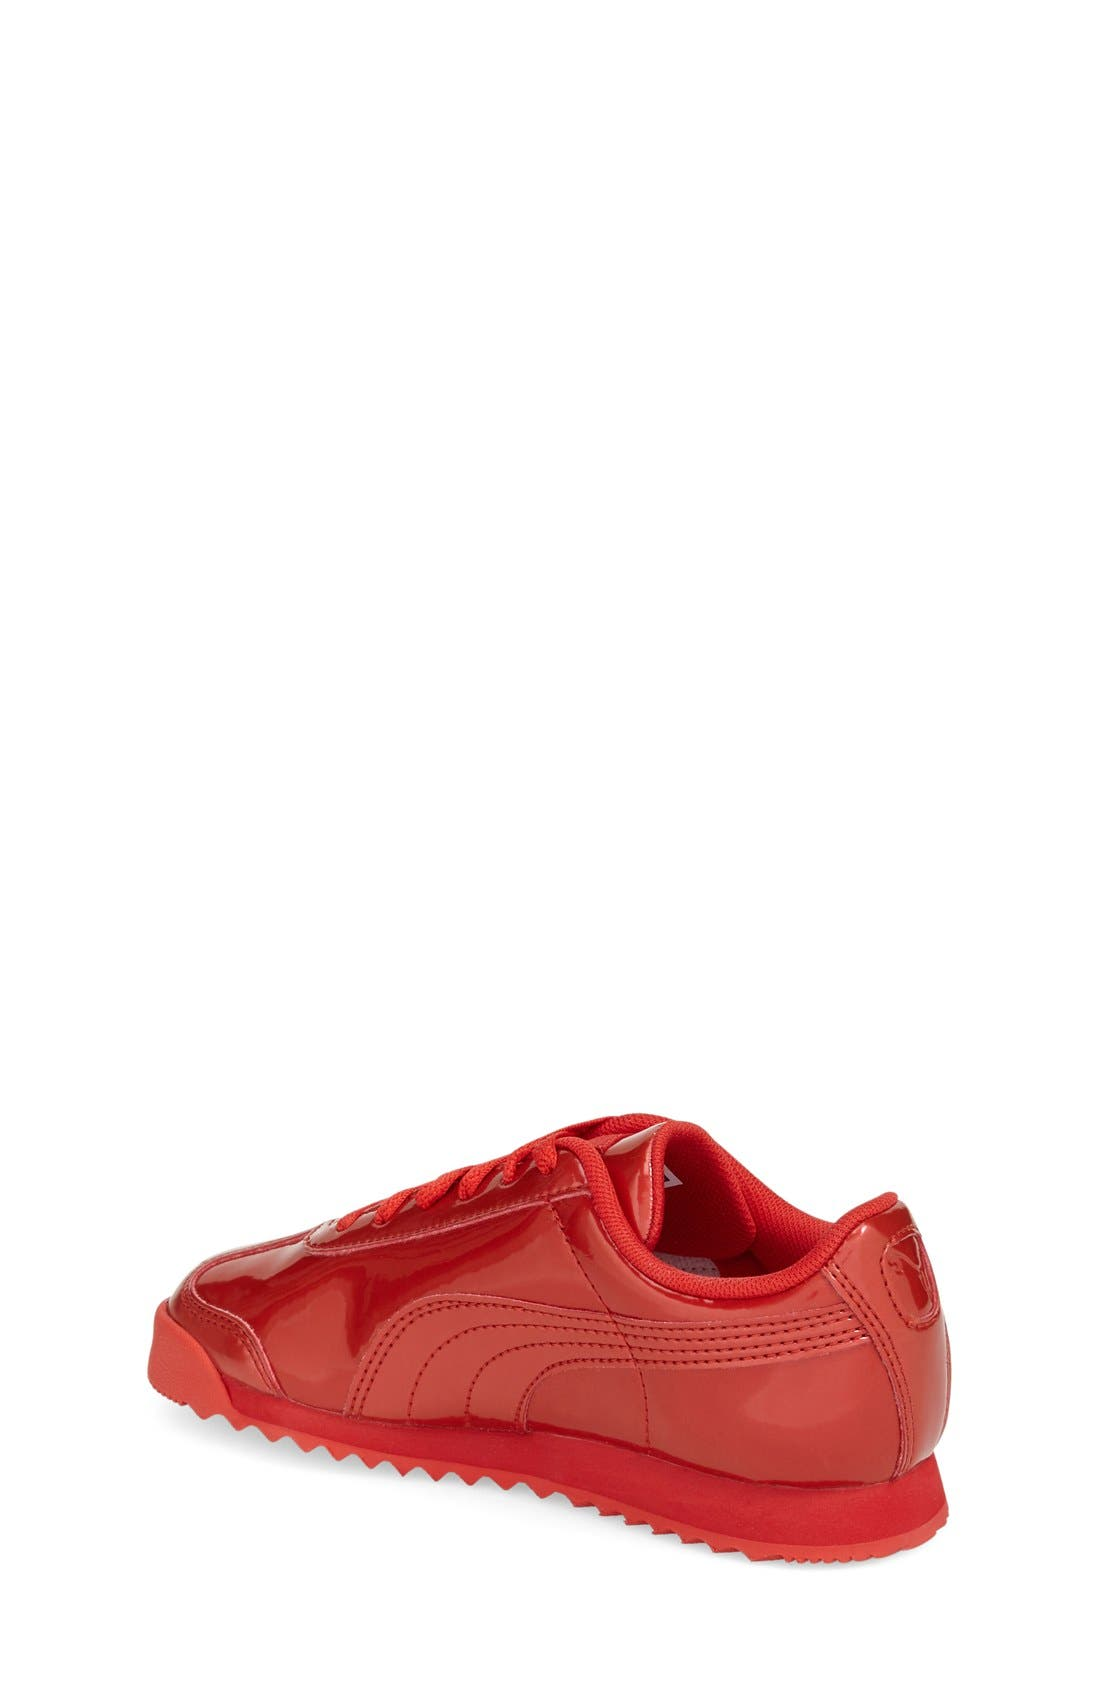 'Roma' Sneaker,                             Alternate thumbnail 2, color,                             600